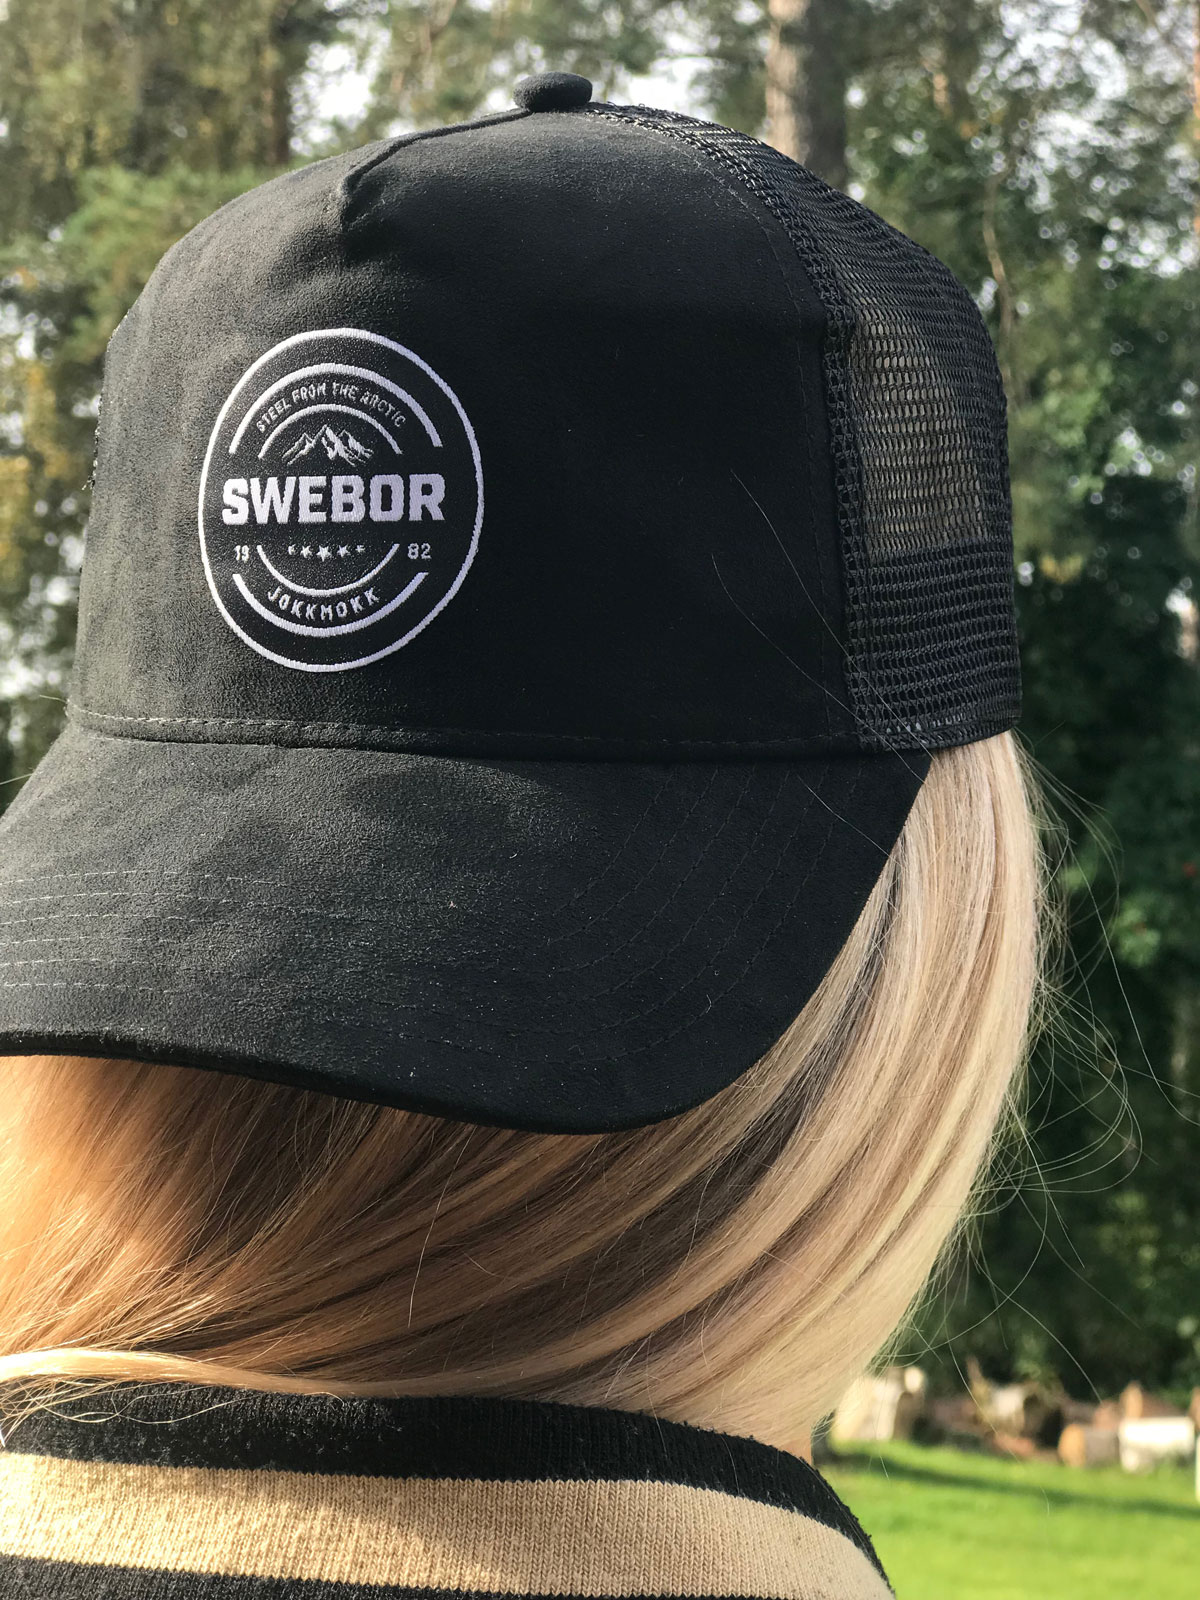 swe-hat2.jpg